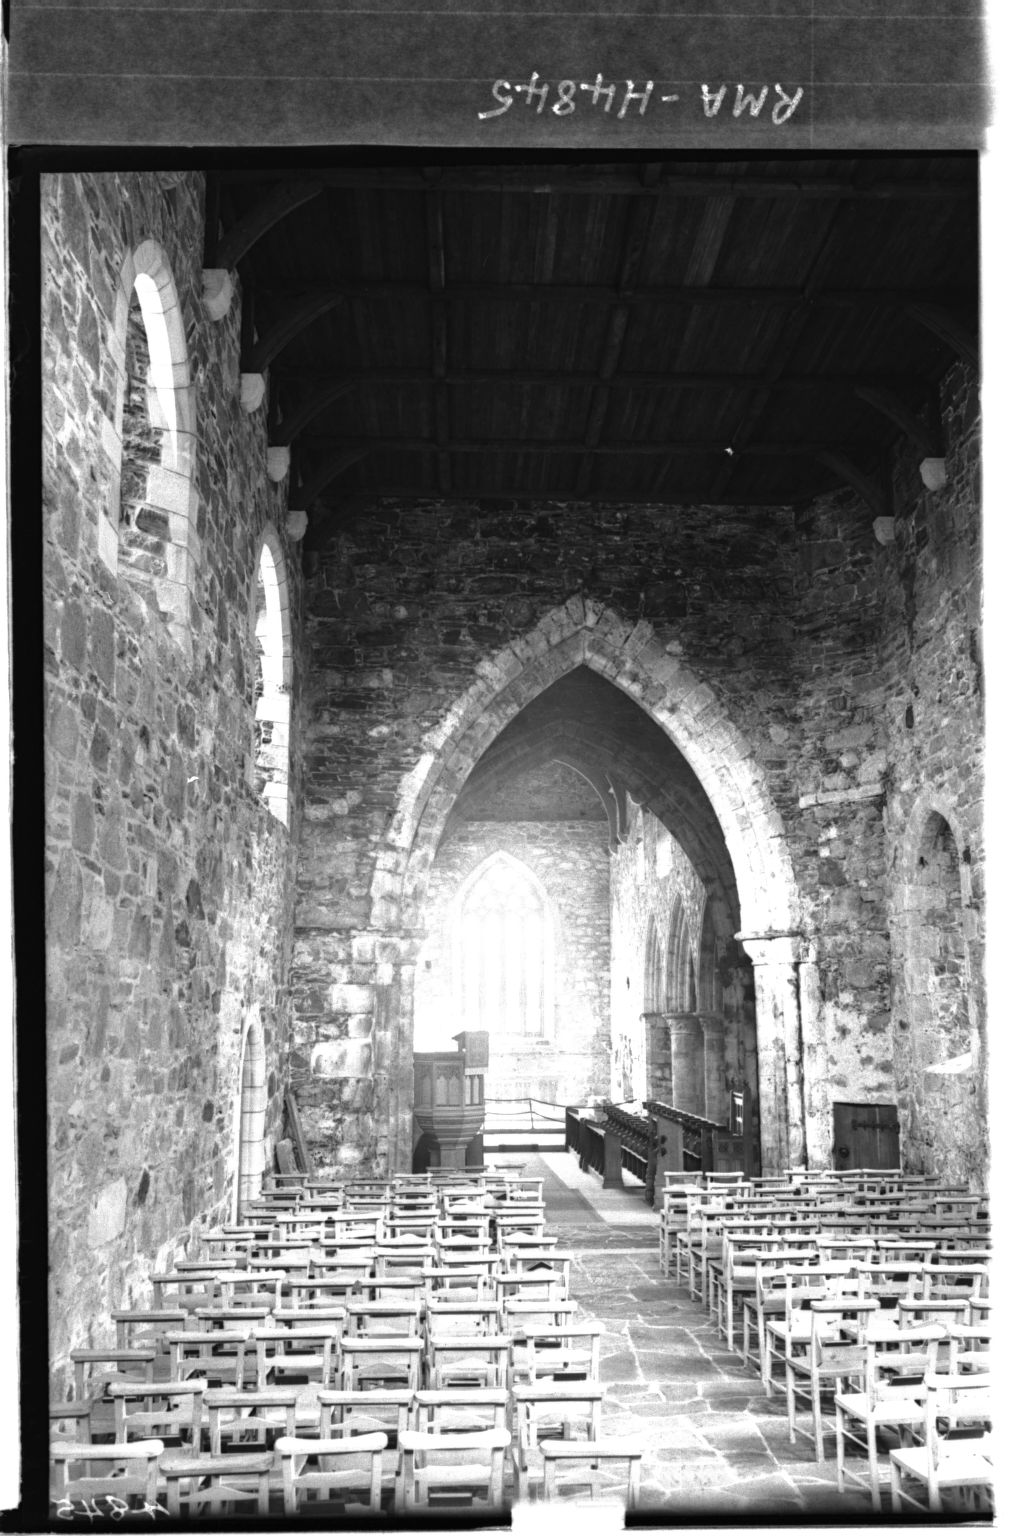 The Nave, Iona Abbey.